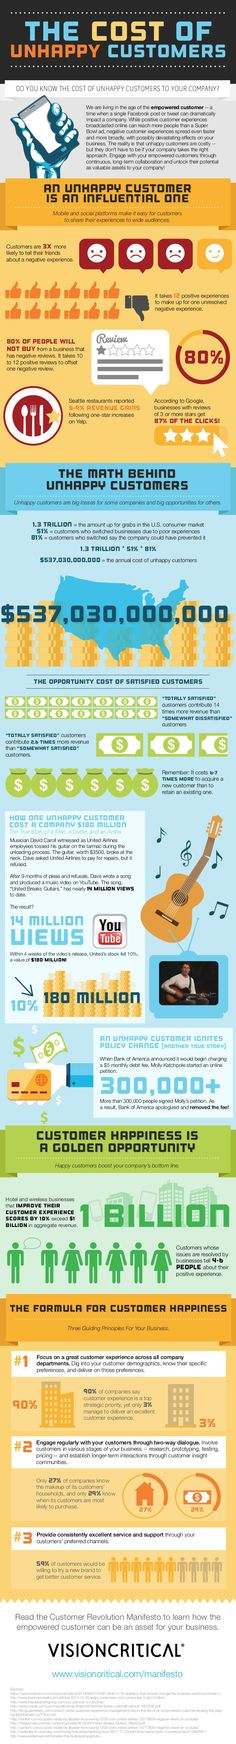 The cost of unhappy customers #infografia #infographic #marketing